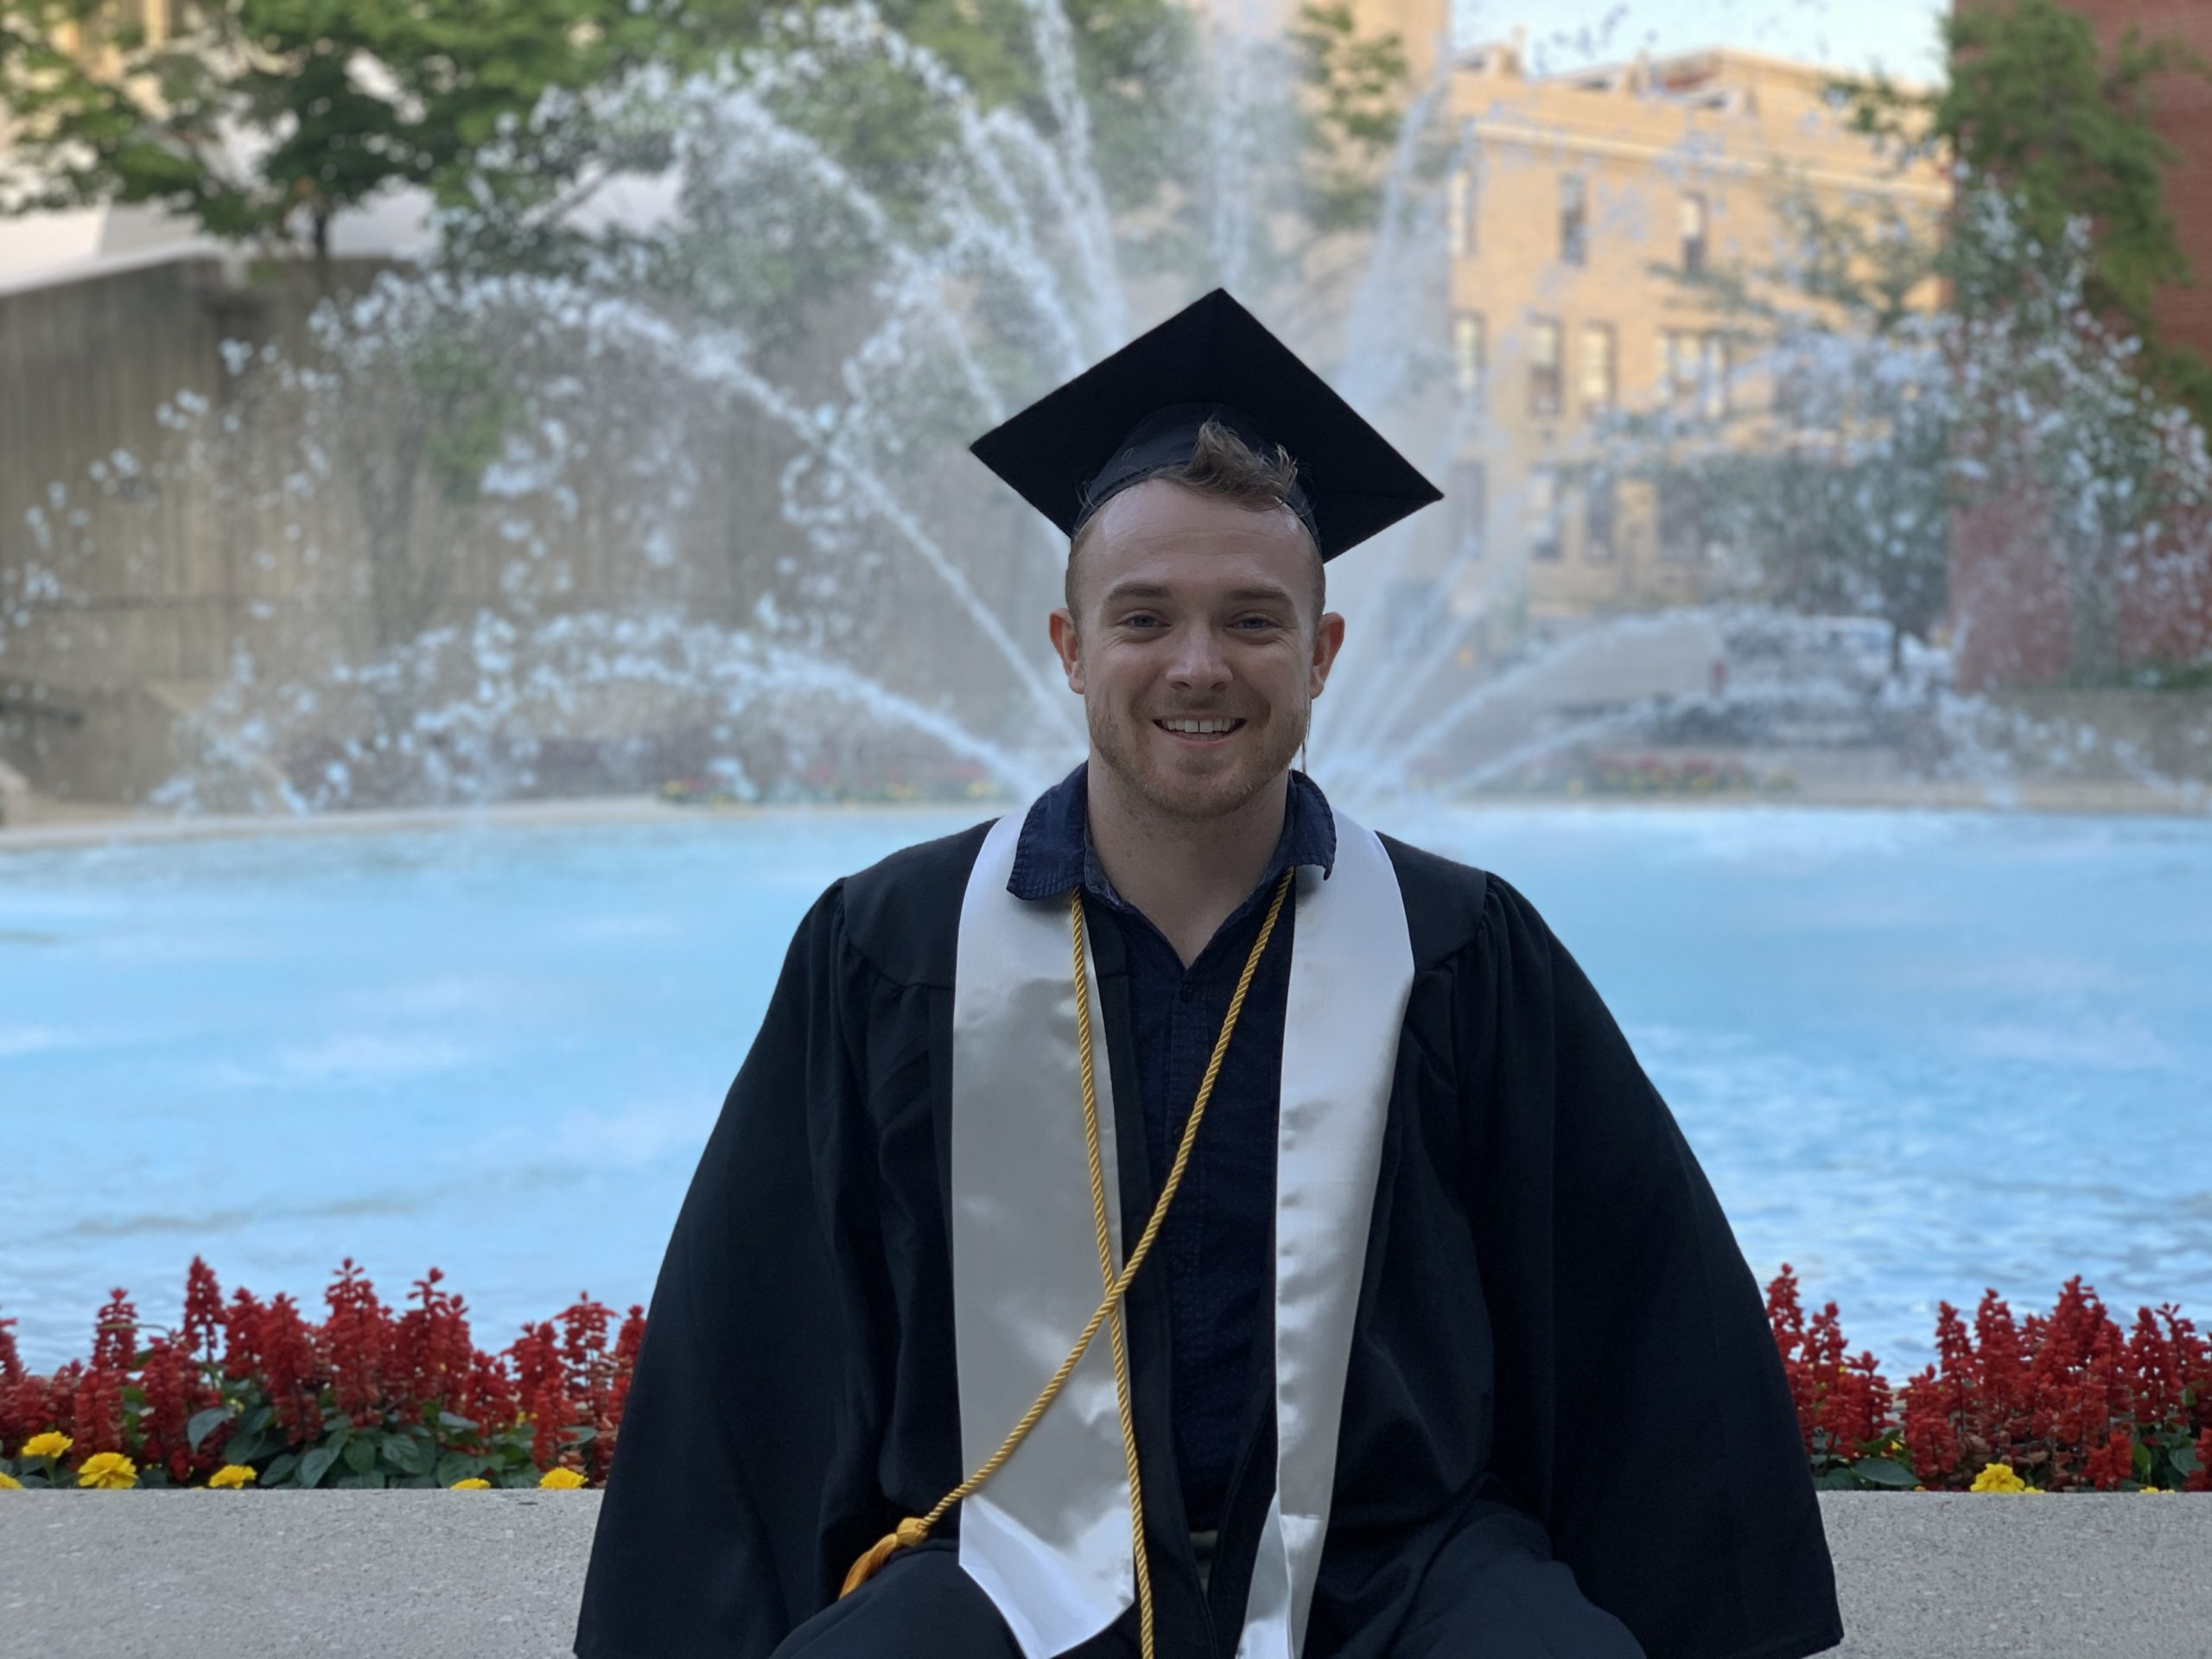 Nathan in cap and gown sitting in front of fountain.